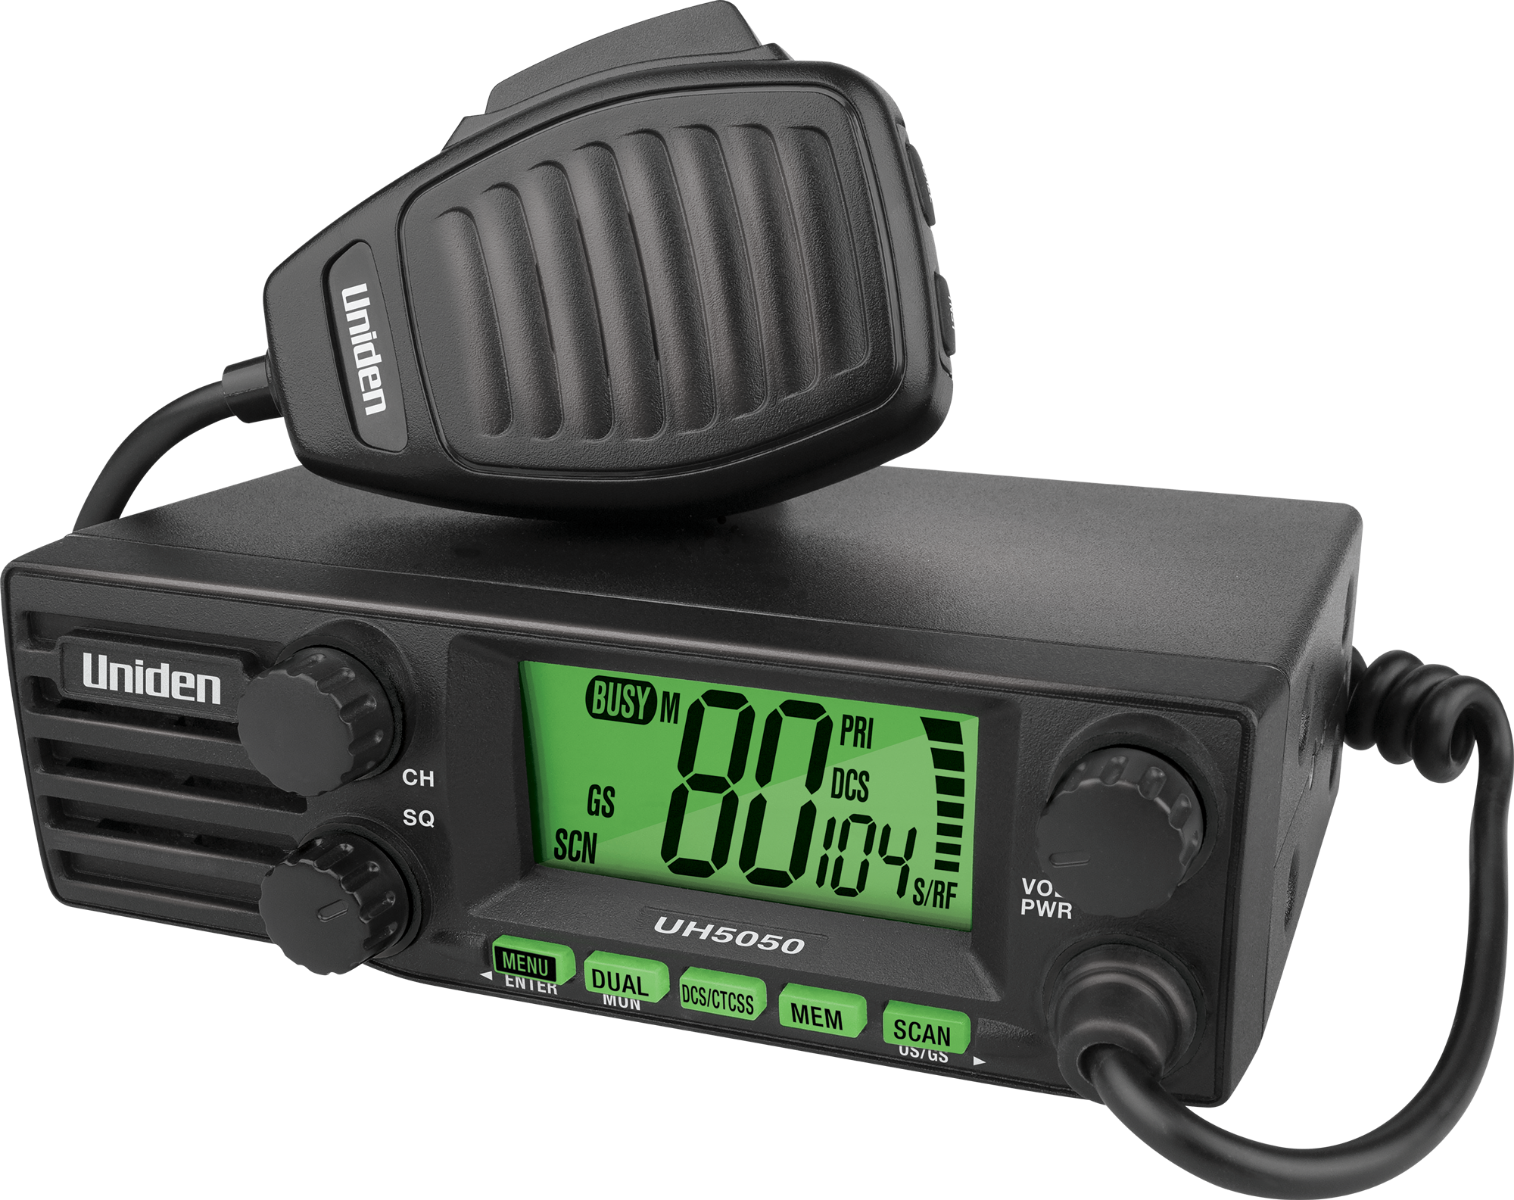 MN also offers a limited selection of UHF (ultra-high-frequency) DIN sized radios